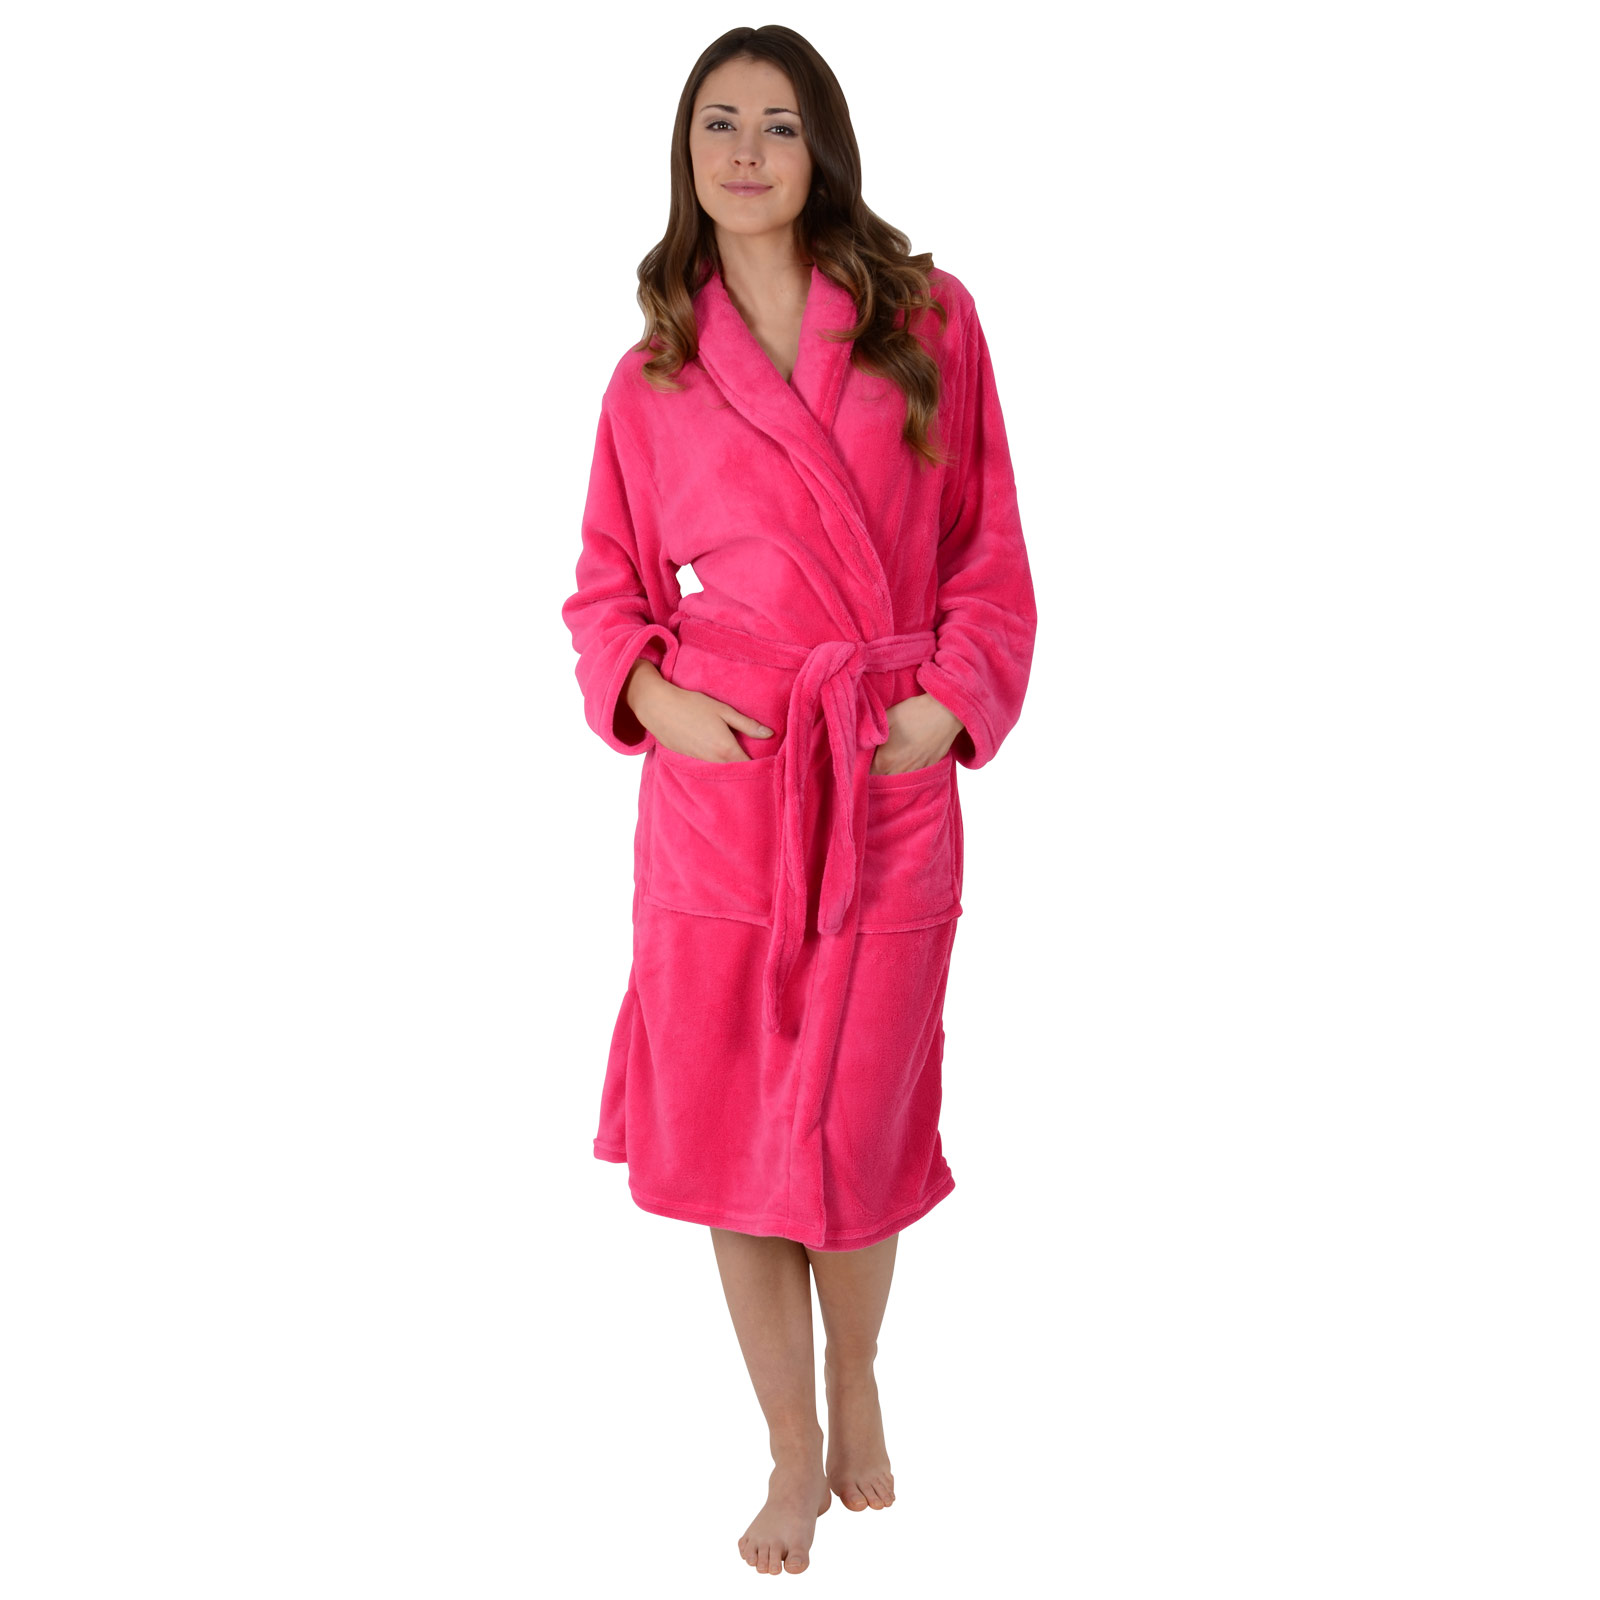 Enjoy free shipping and easy returns every day at Kohl's. Find great deals on Womens Robes at Kohl's today!